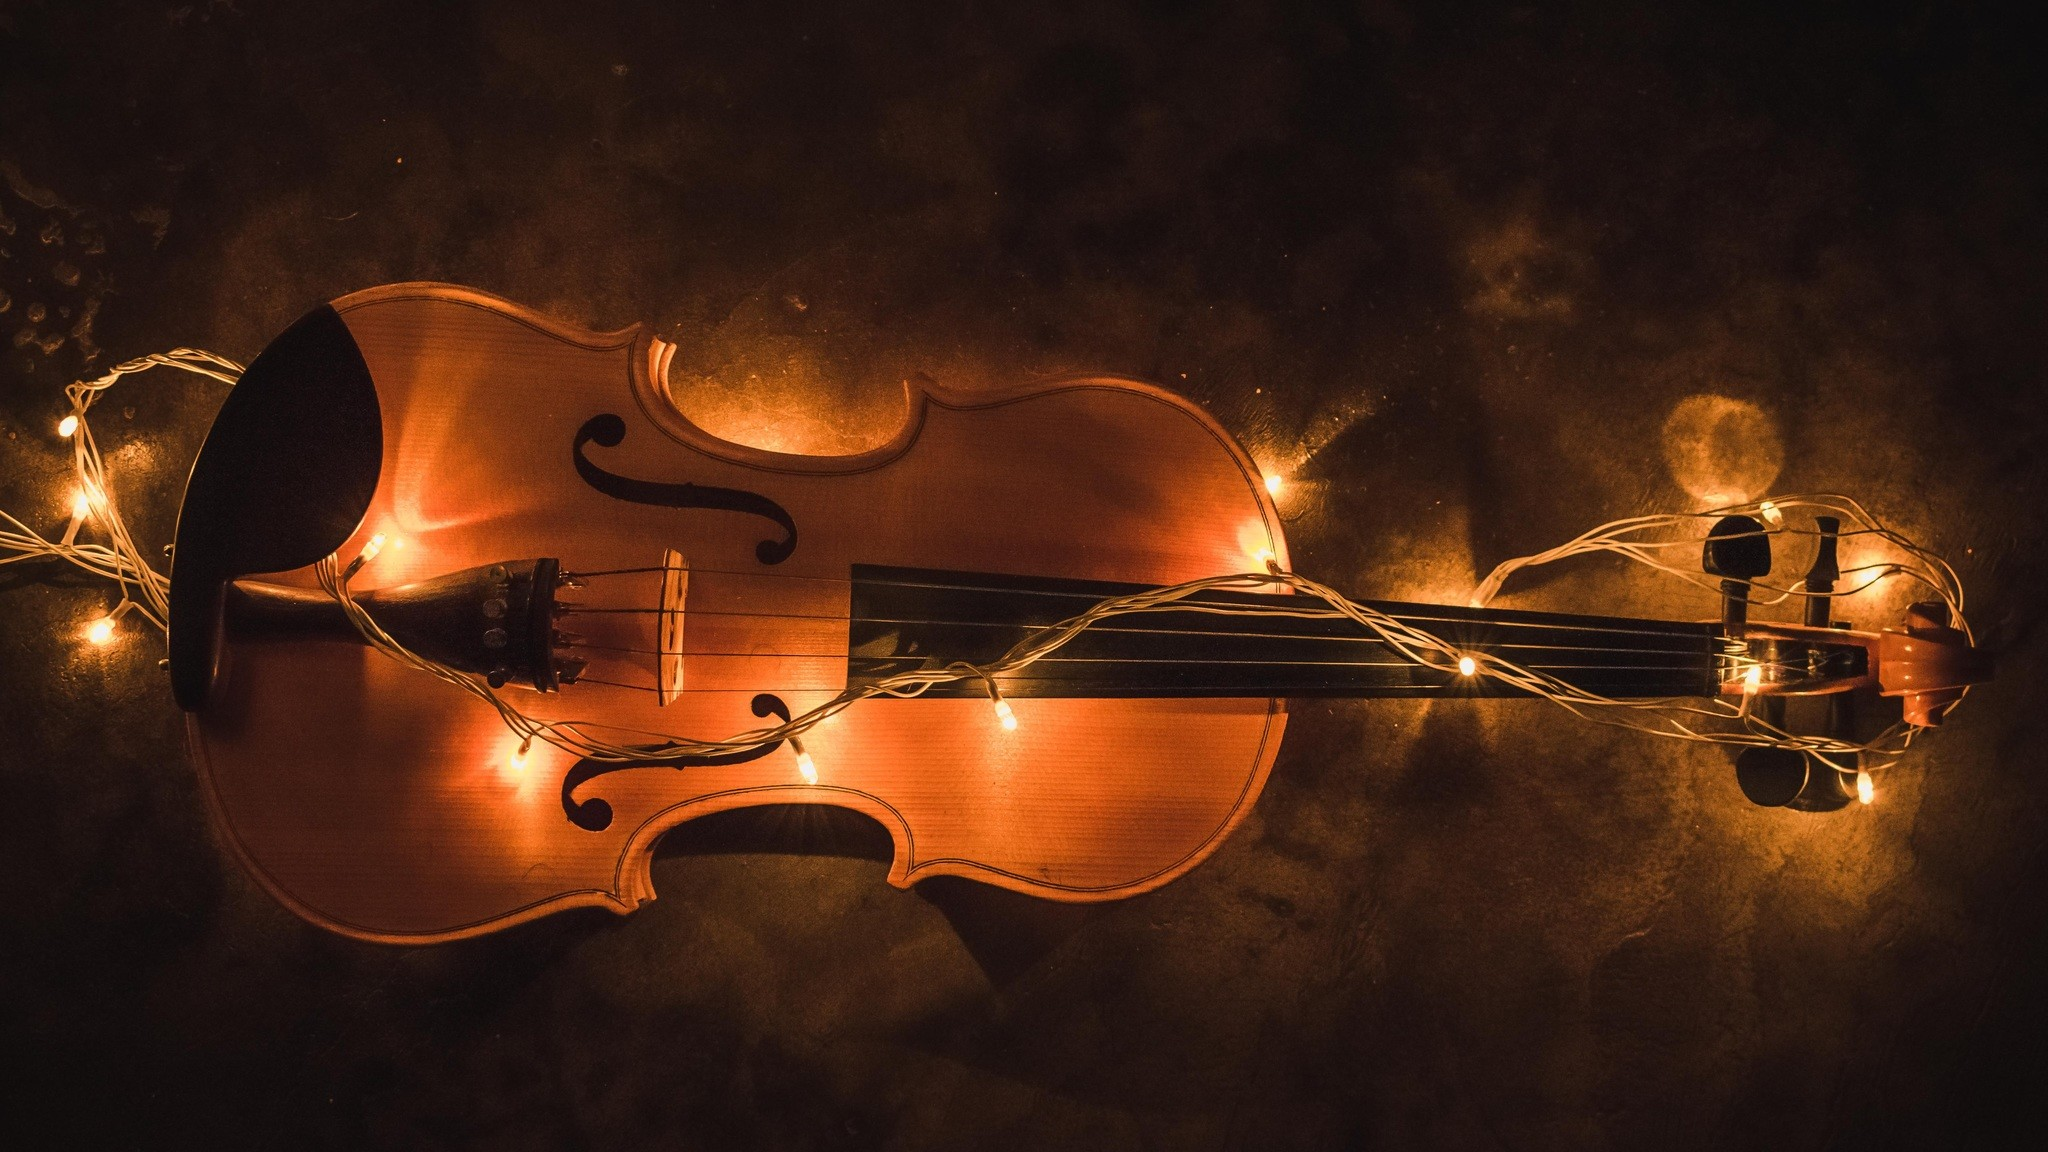 Res: 2048x1152,  Violin Lighting Instrument  Resolution HD 4k Wallpapers,  Images, Backgrounds, Photos and Pictures